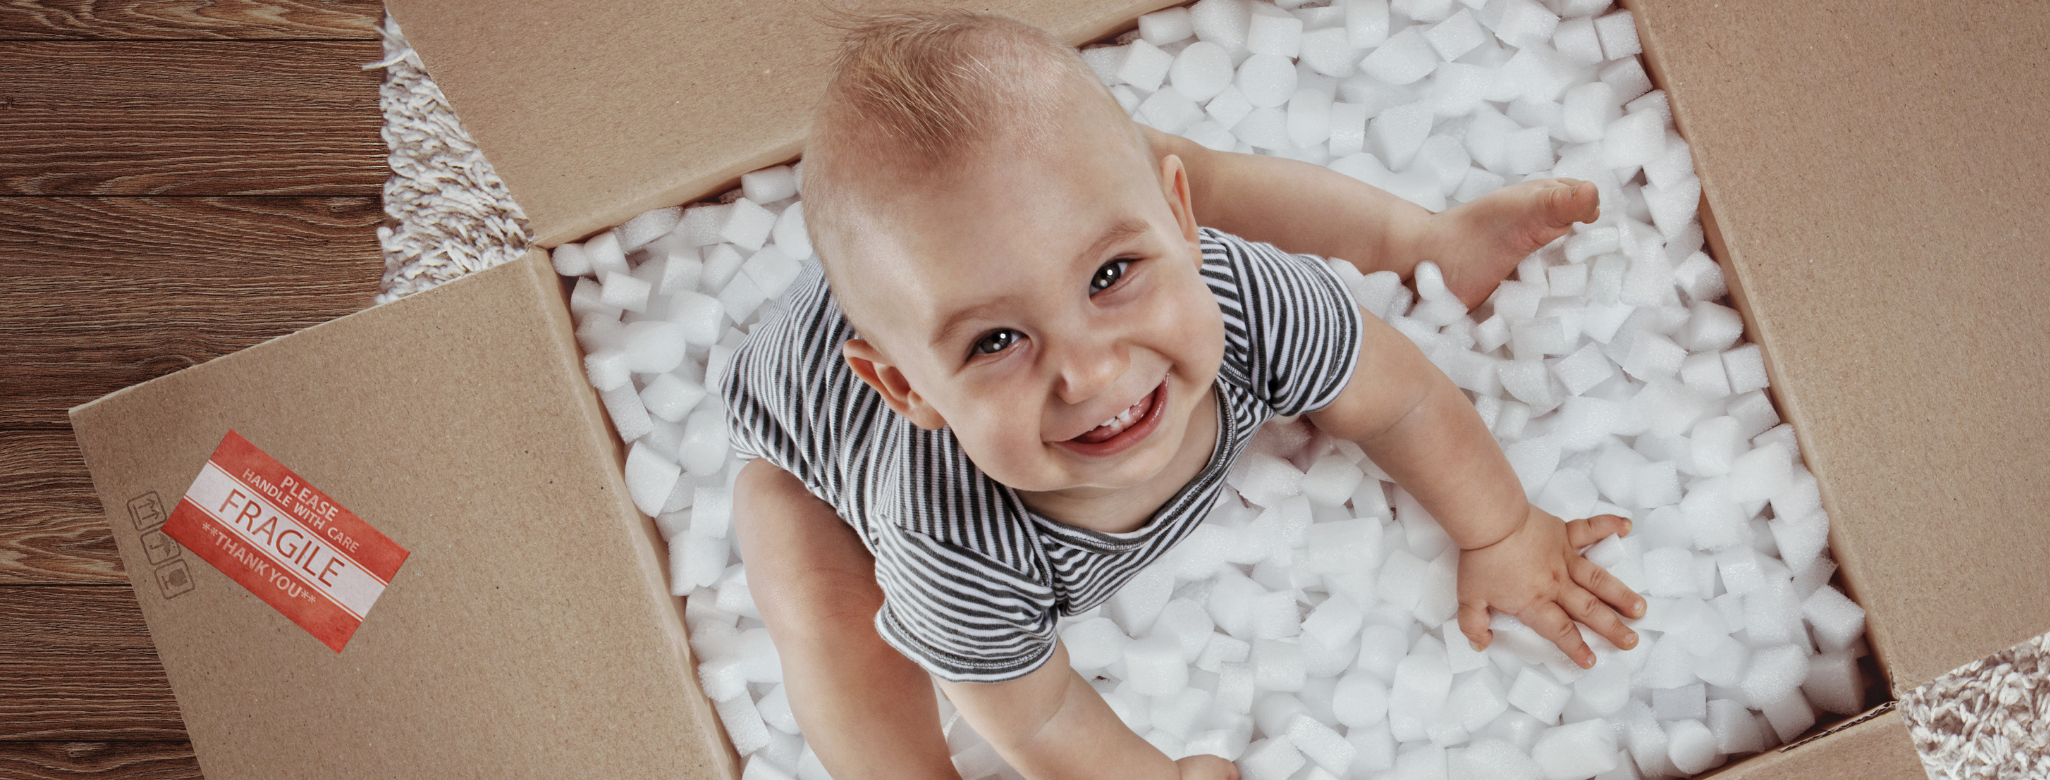 Baby Safety Month - Baby in Box with Packing Peanuts